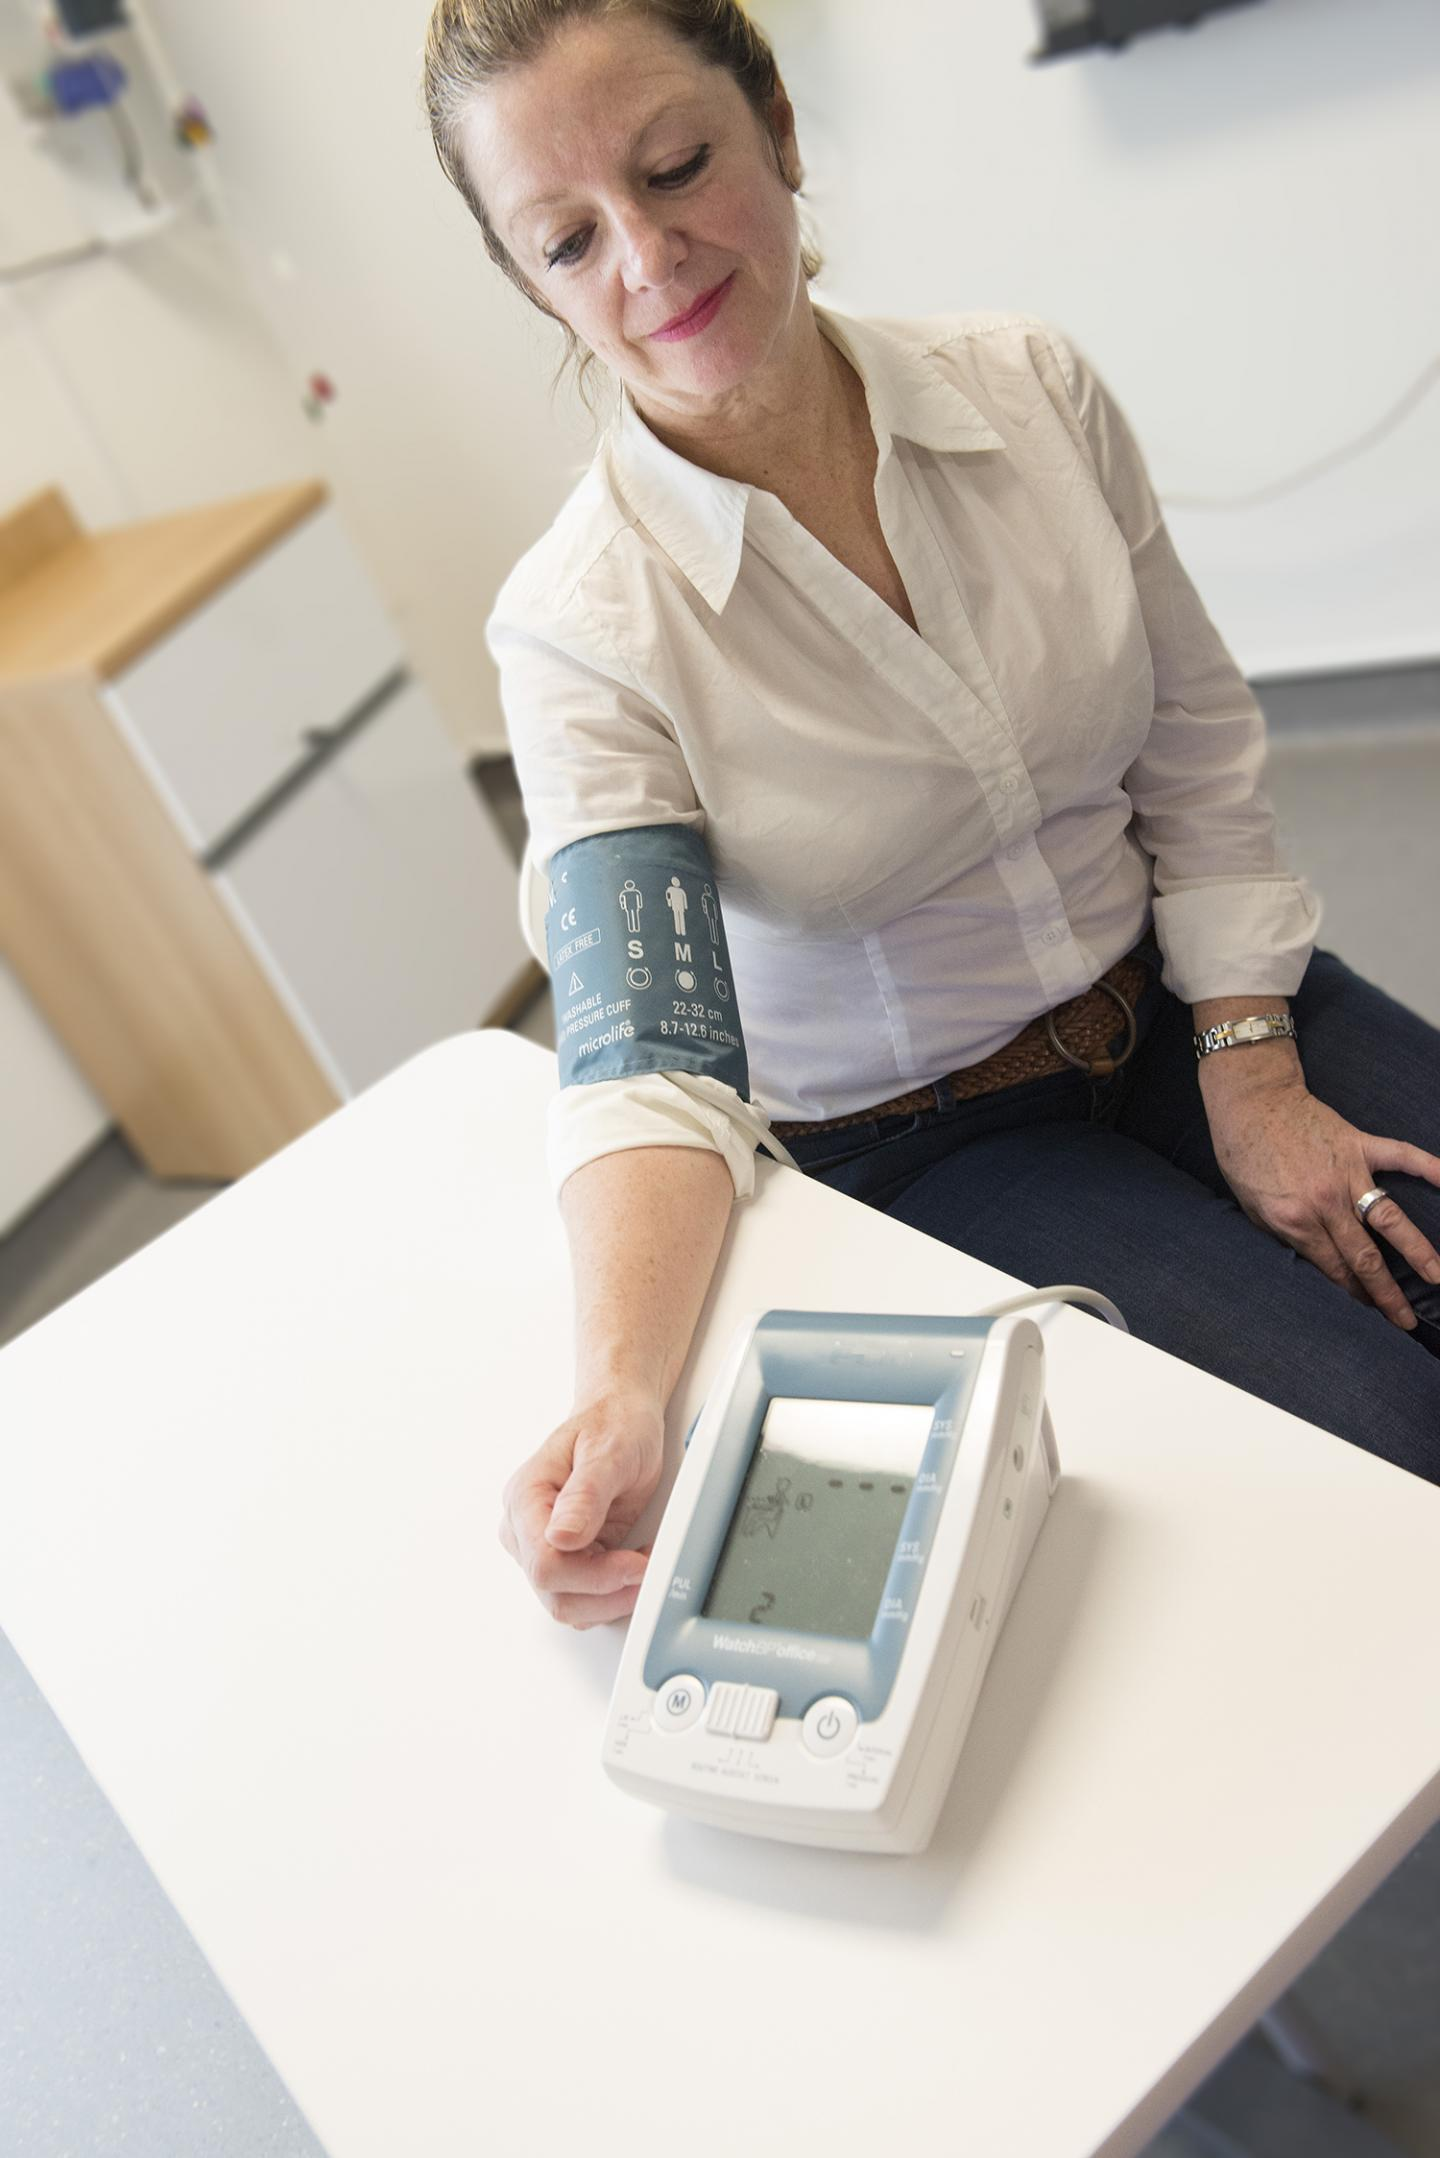 Automatic Electronic Device to Measure Blood Pressure